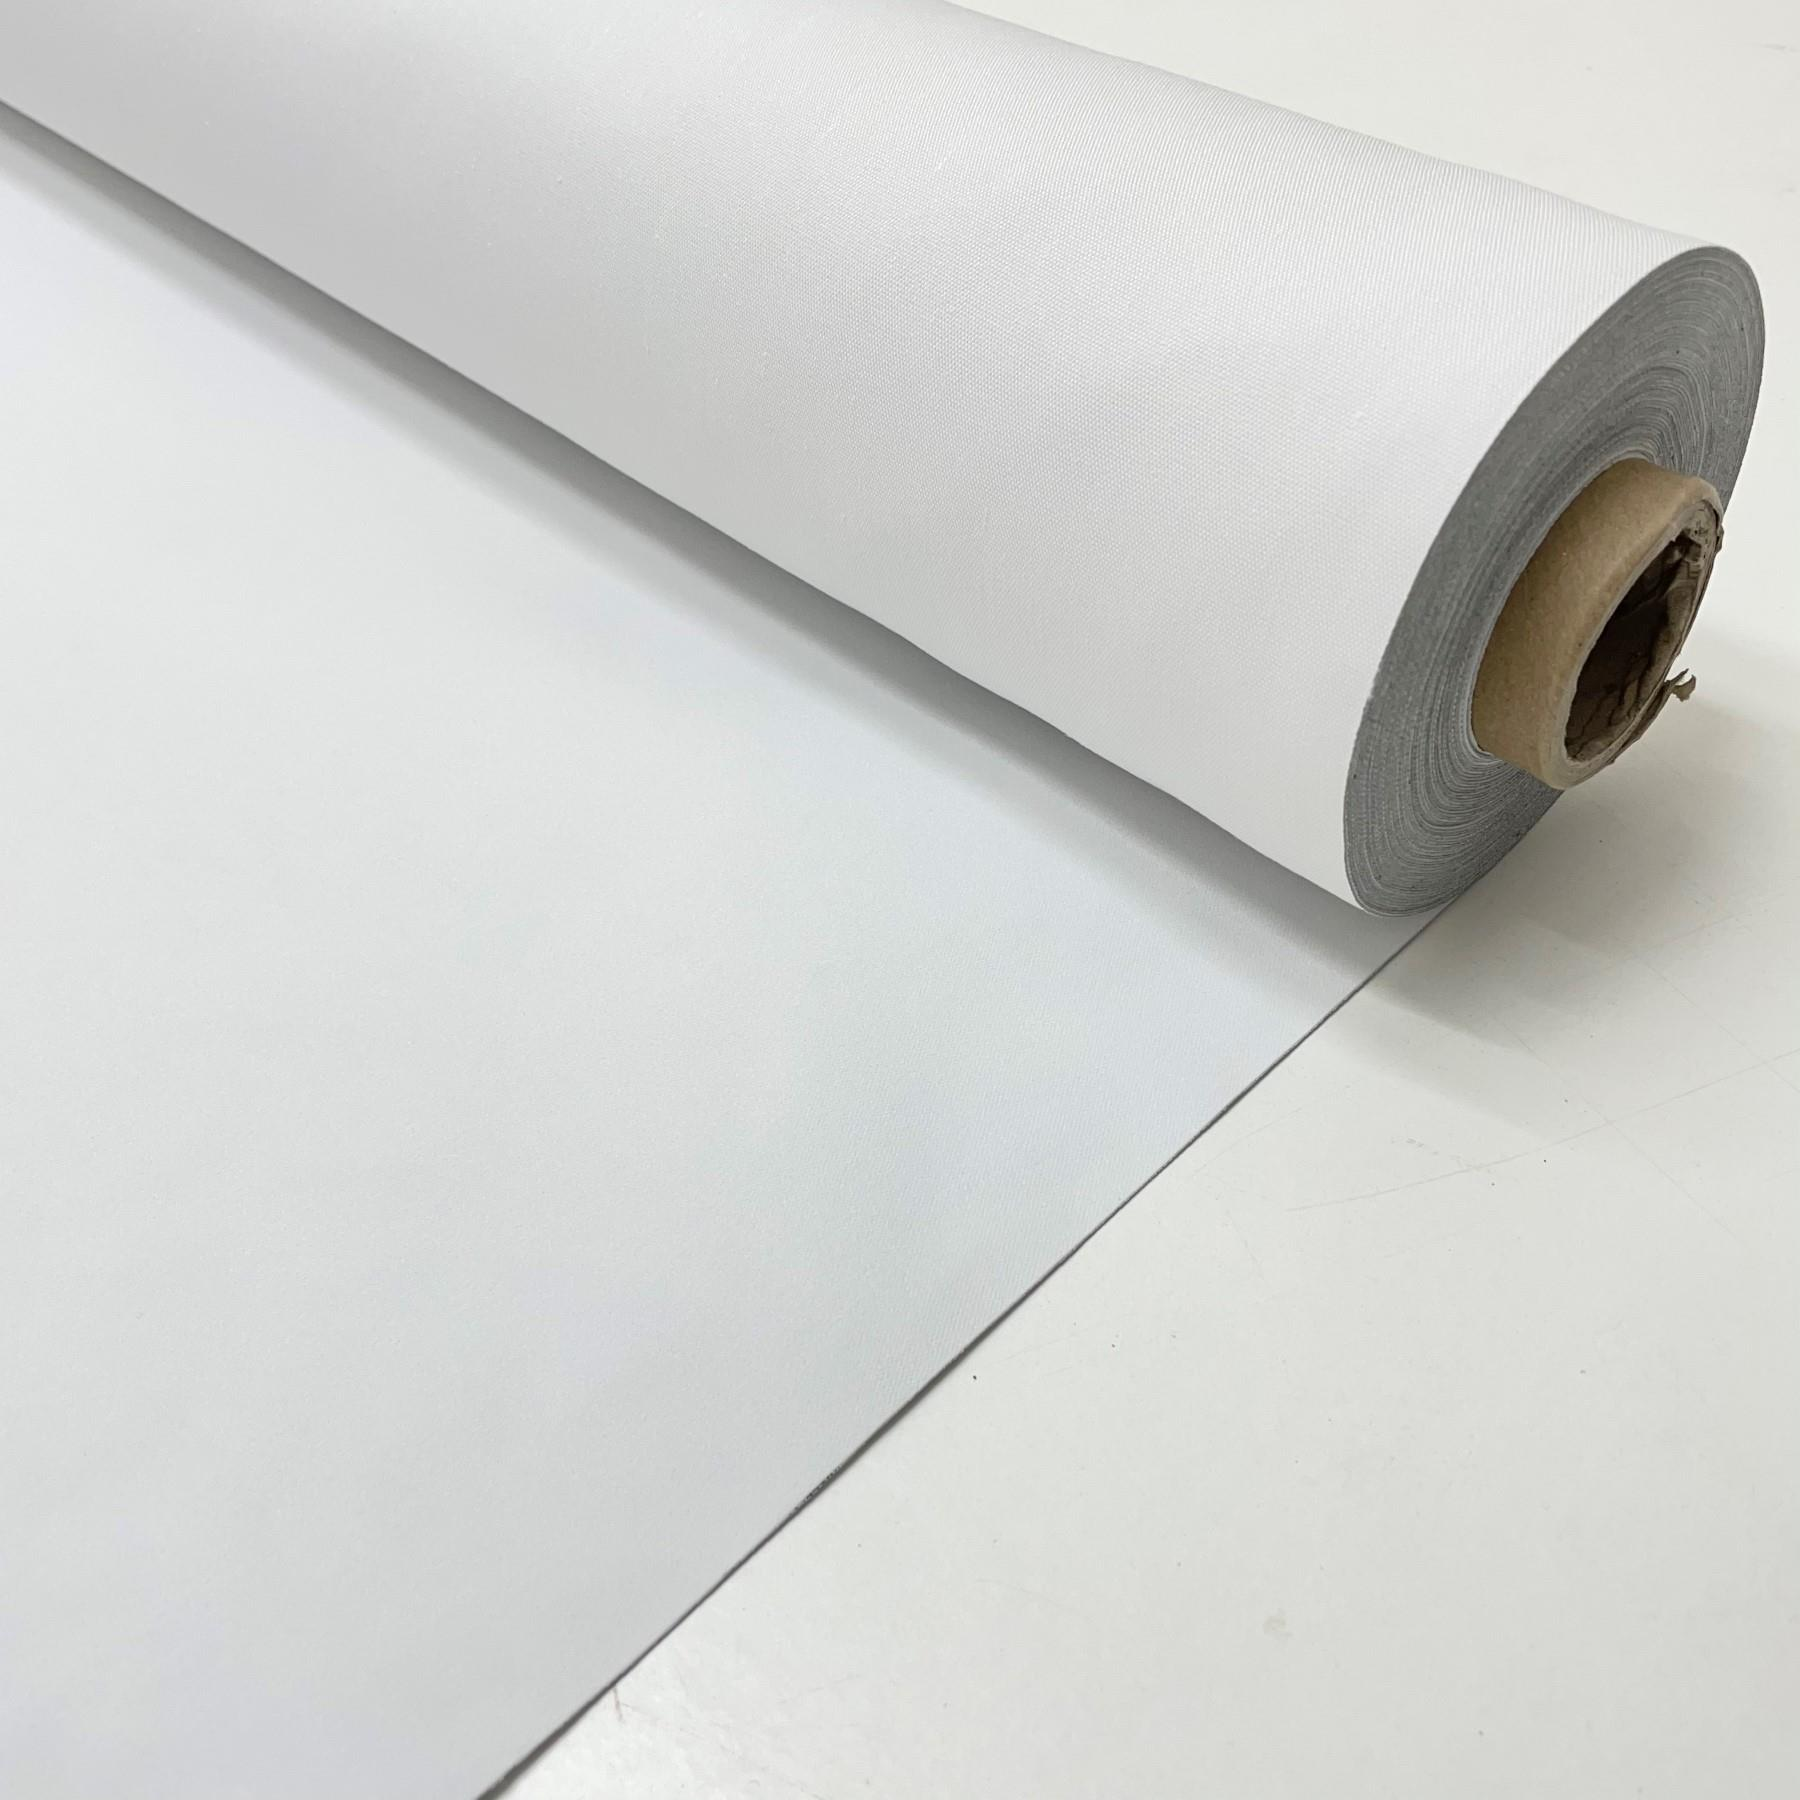 thumbnail 10 - COTTON THERMAL CURTAIN BLIND LINING 3PASS BLACKOUT REVERSIBLE FABRIC MATERIAL